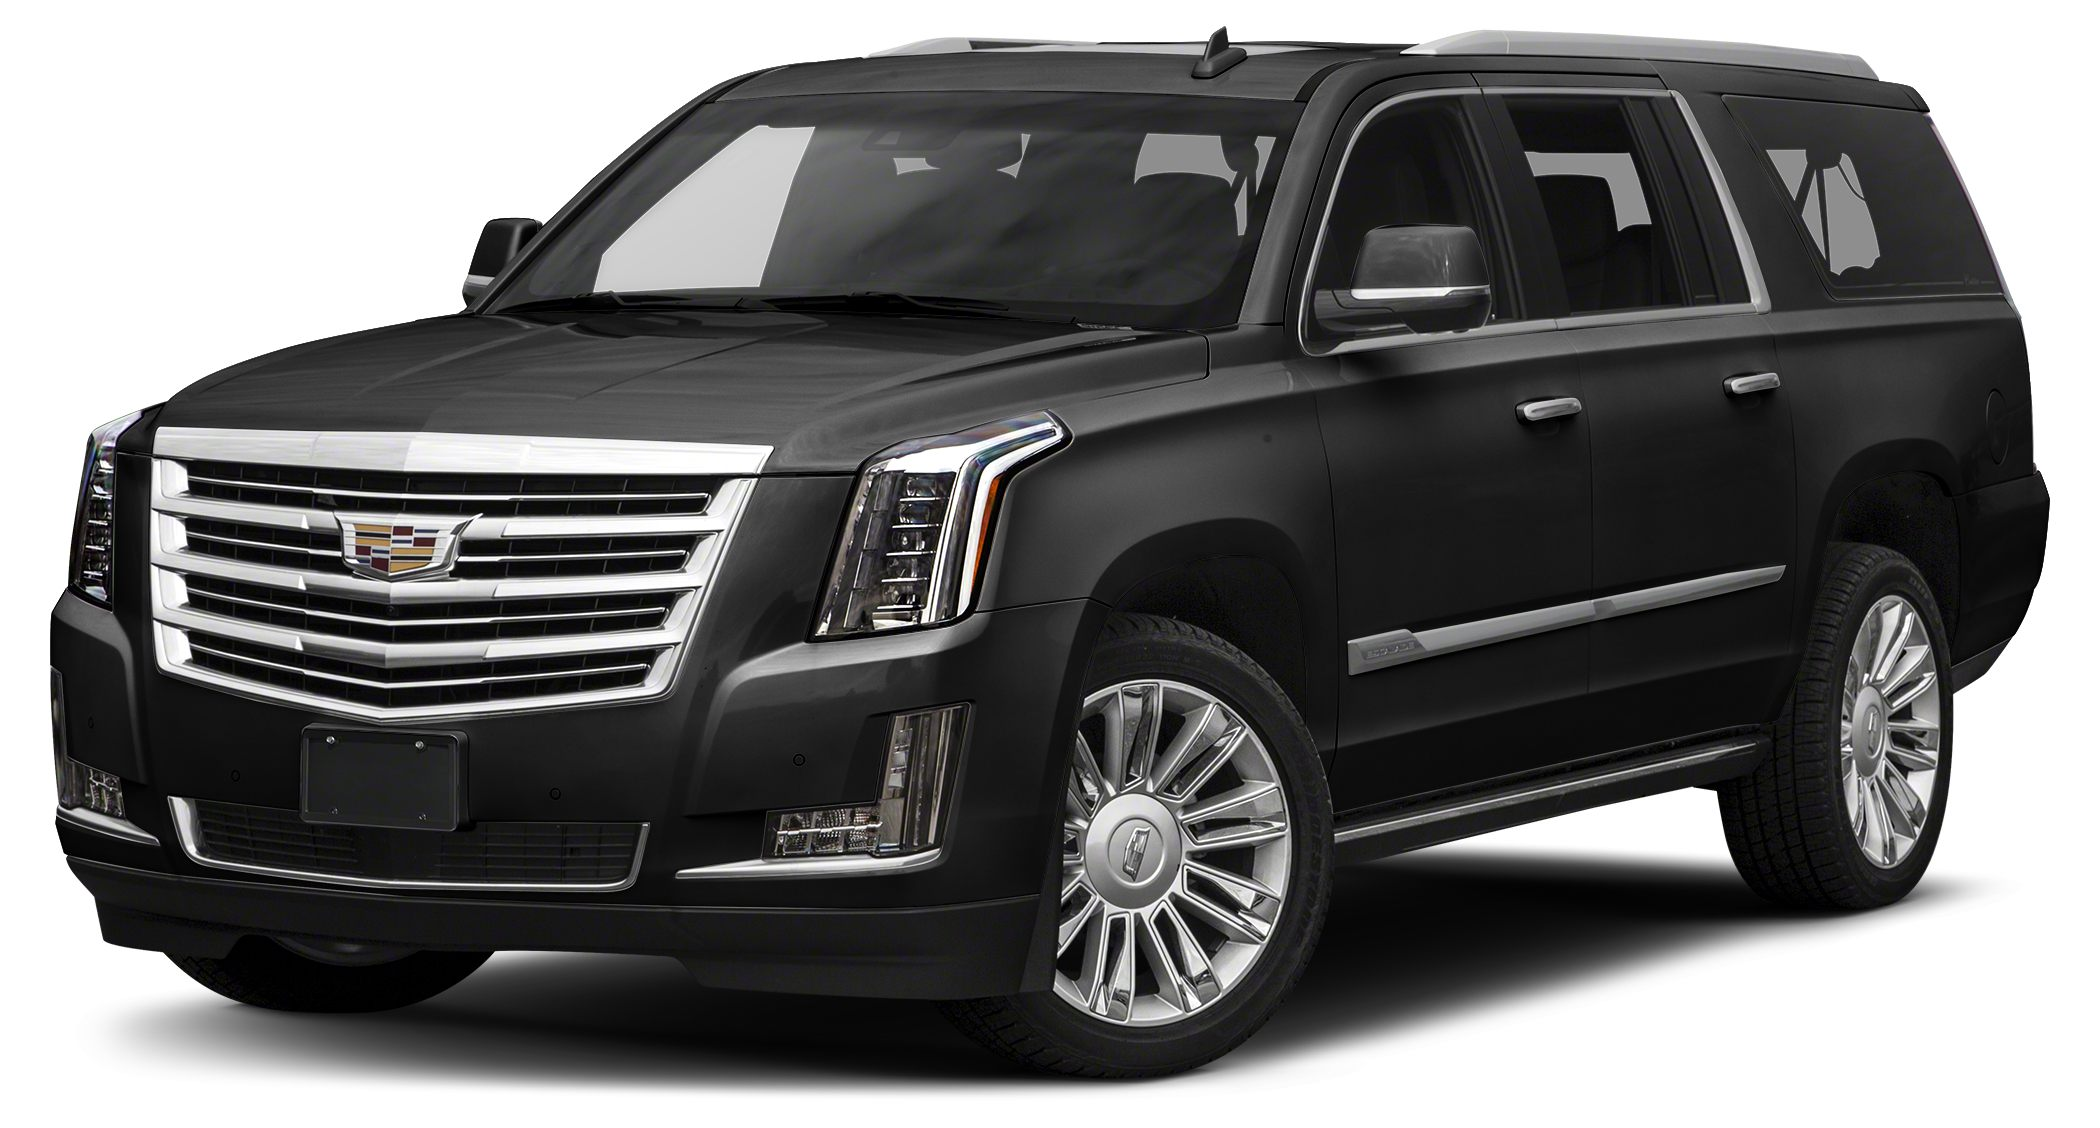 2017 Cadillac Escalade ESV Platinum The well-recognized Escalade has been among the Kings of the S